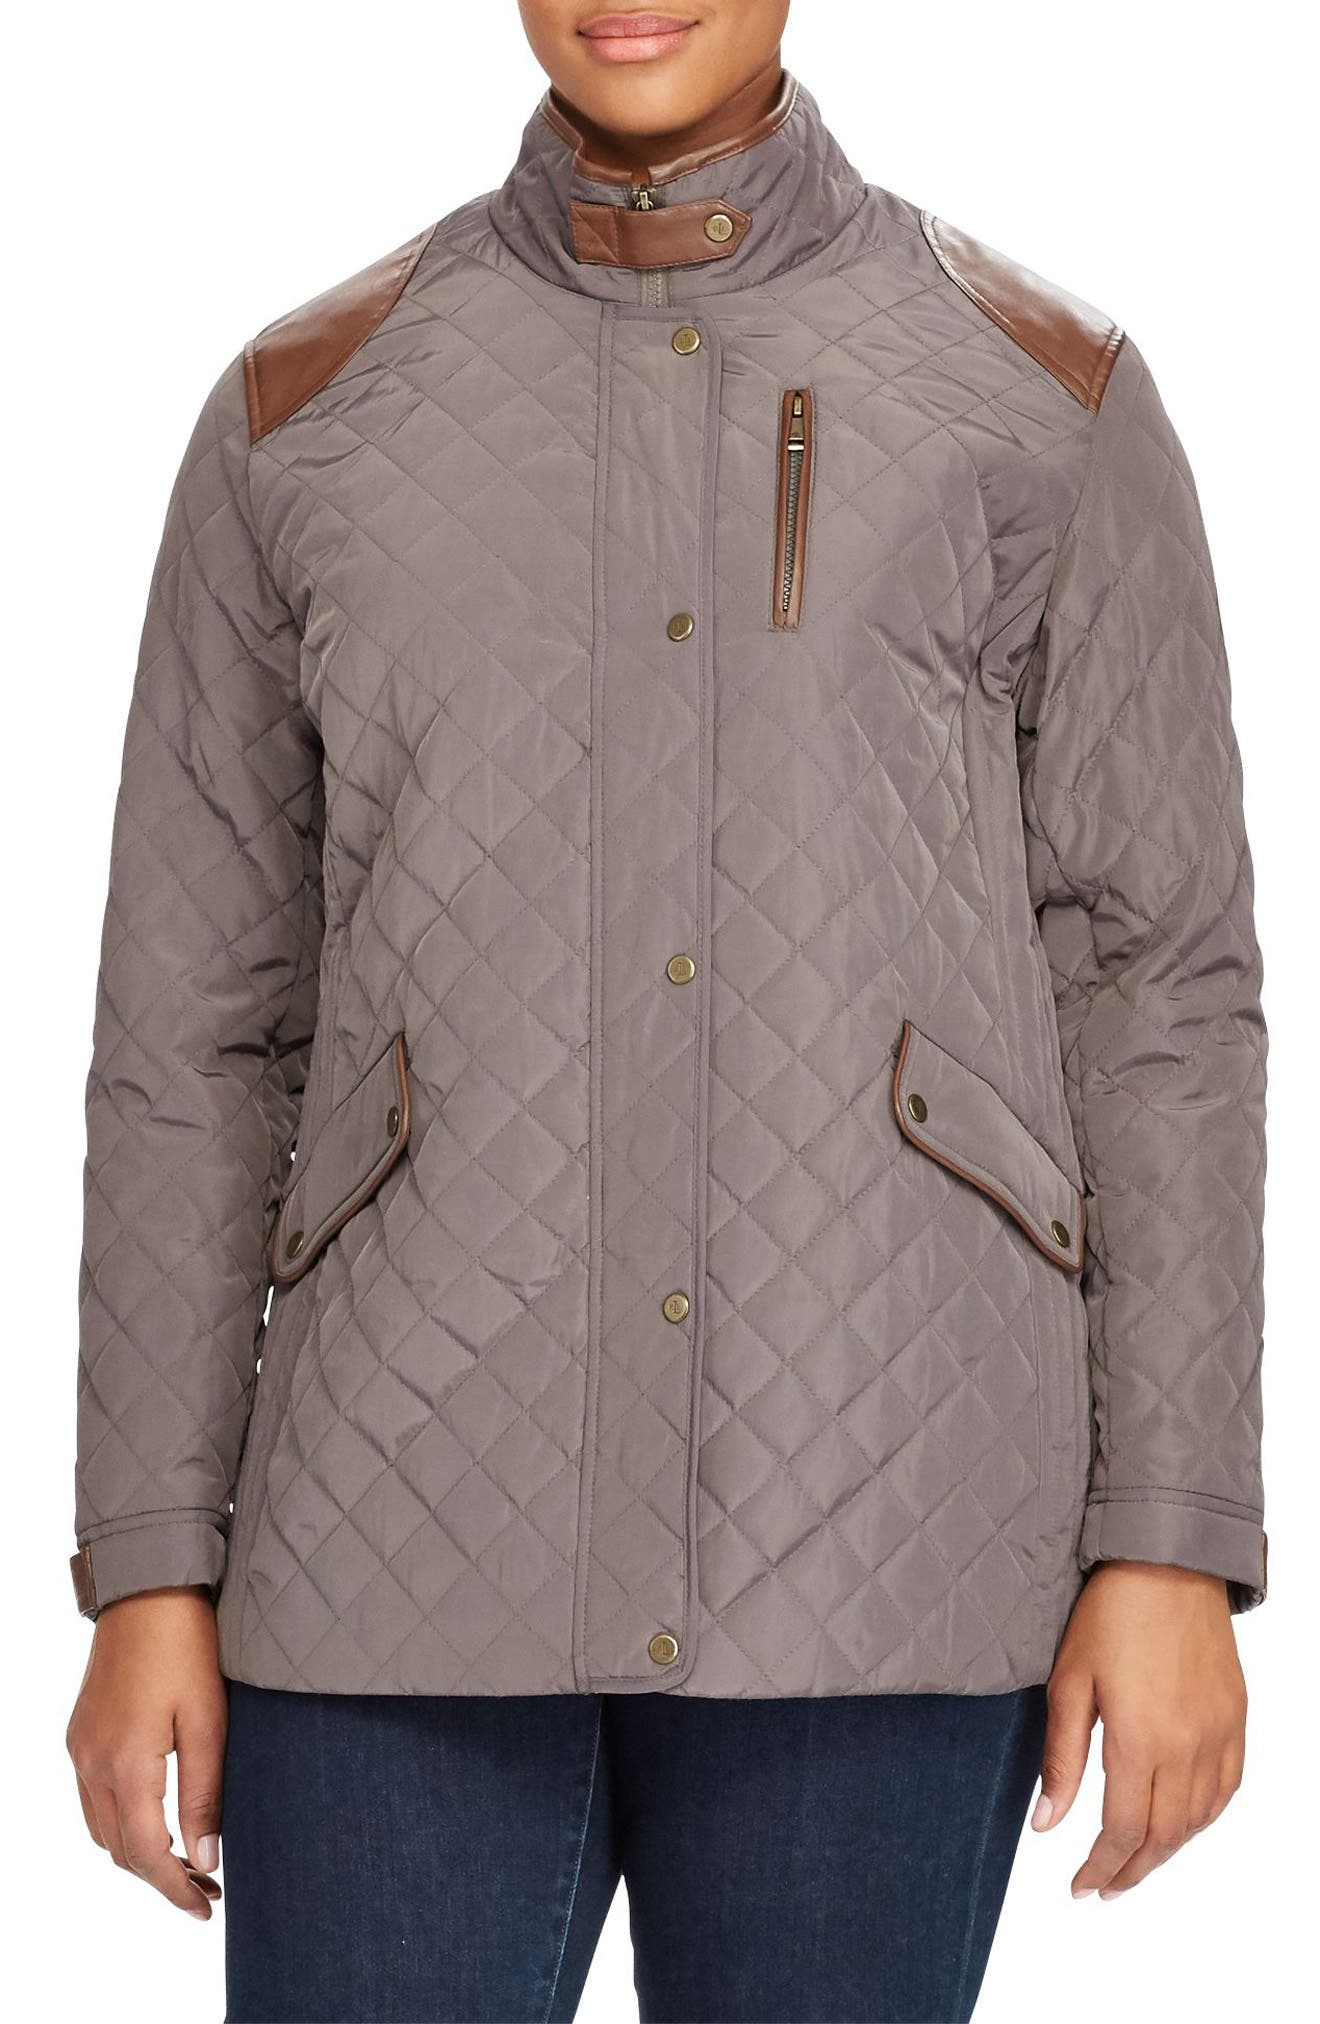 Lauren Ralph Lauren Quilted Jacket with Faux Leather Trim (Plus Size)